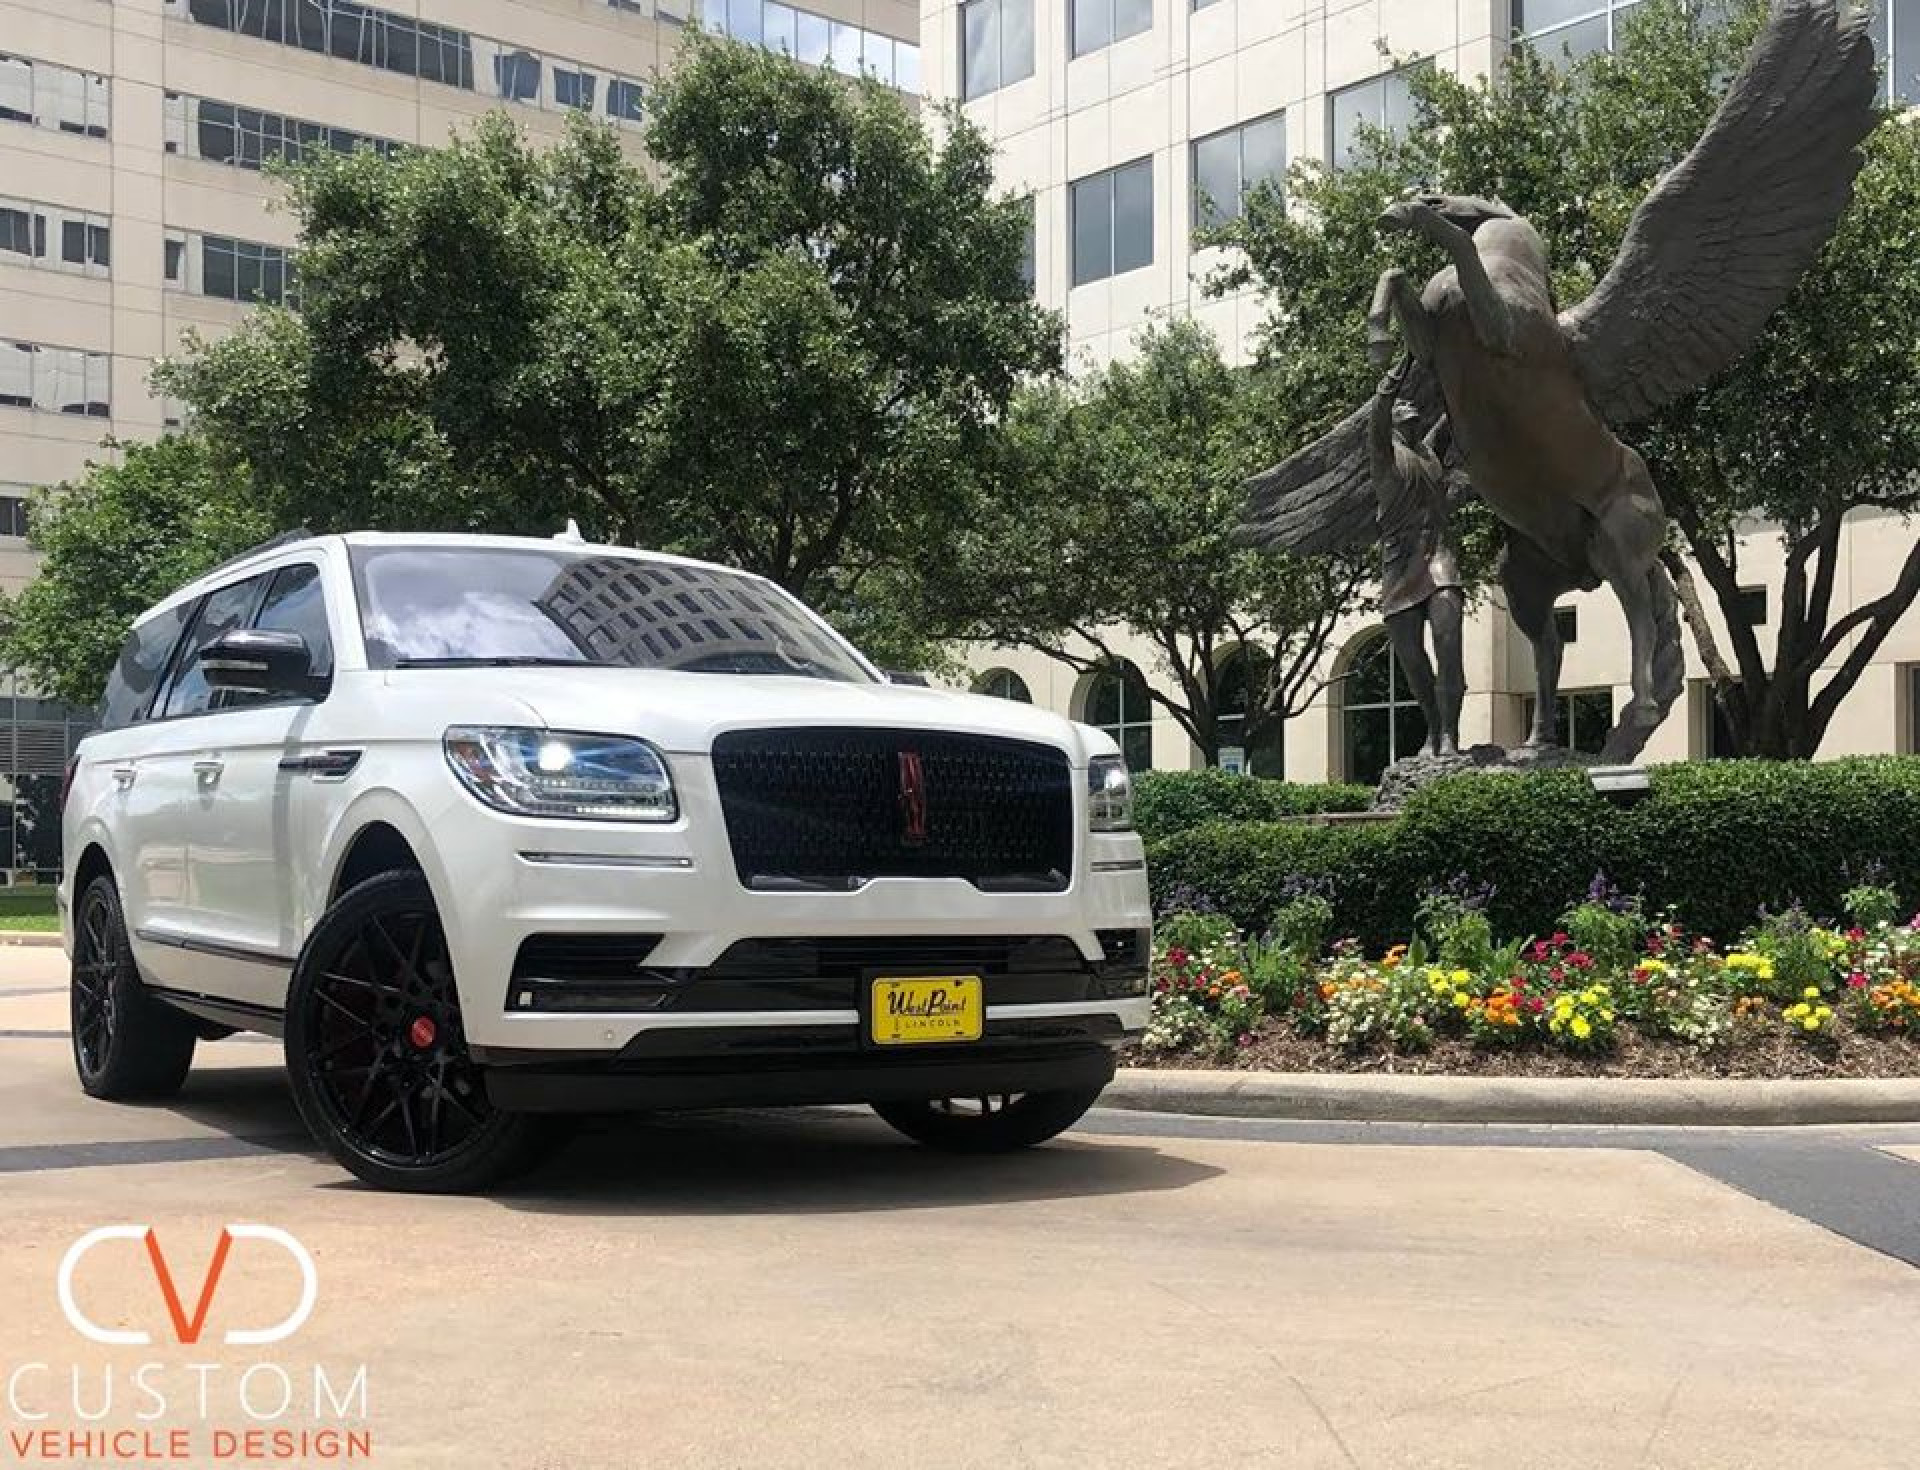 "2020 Lincoln Navigator - Deviate Signature series - with 24"" Griffin Gloss Black wheels."